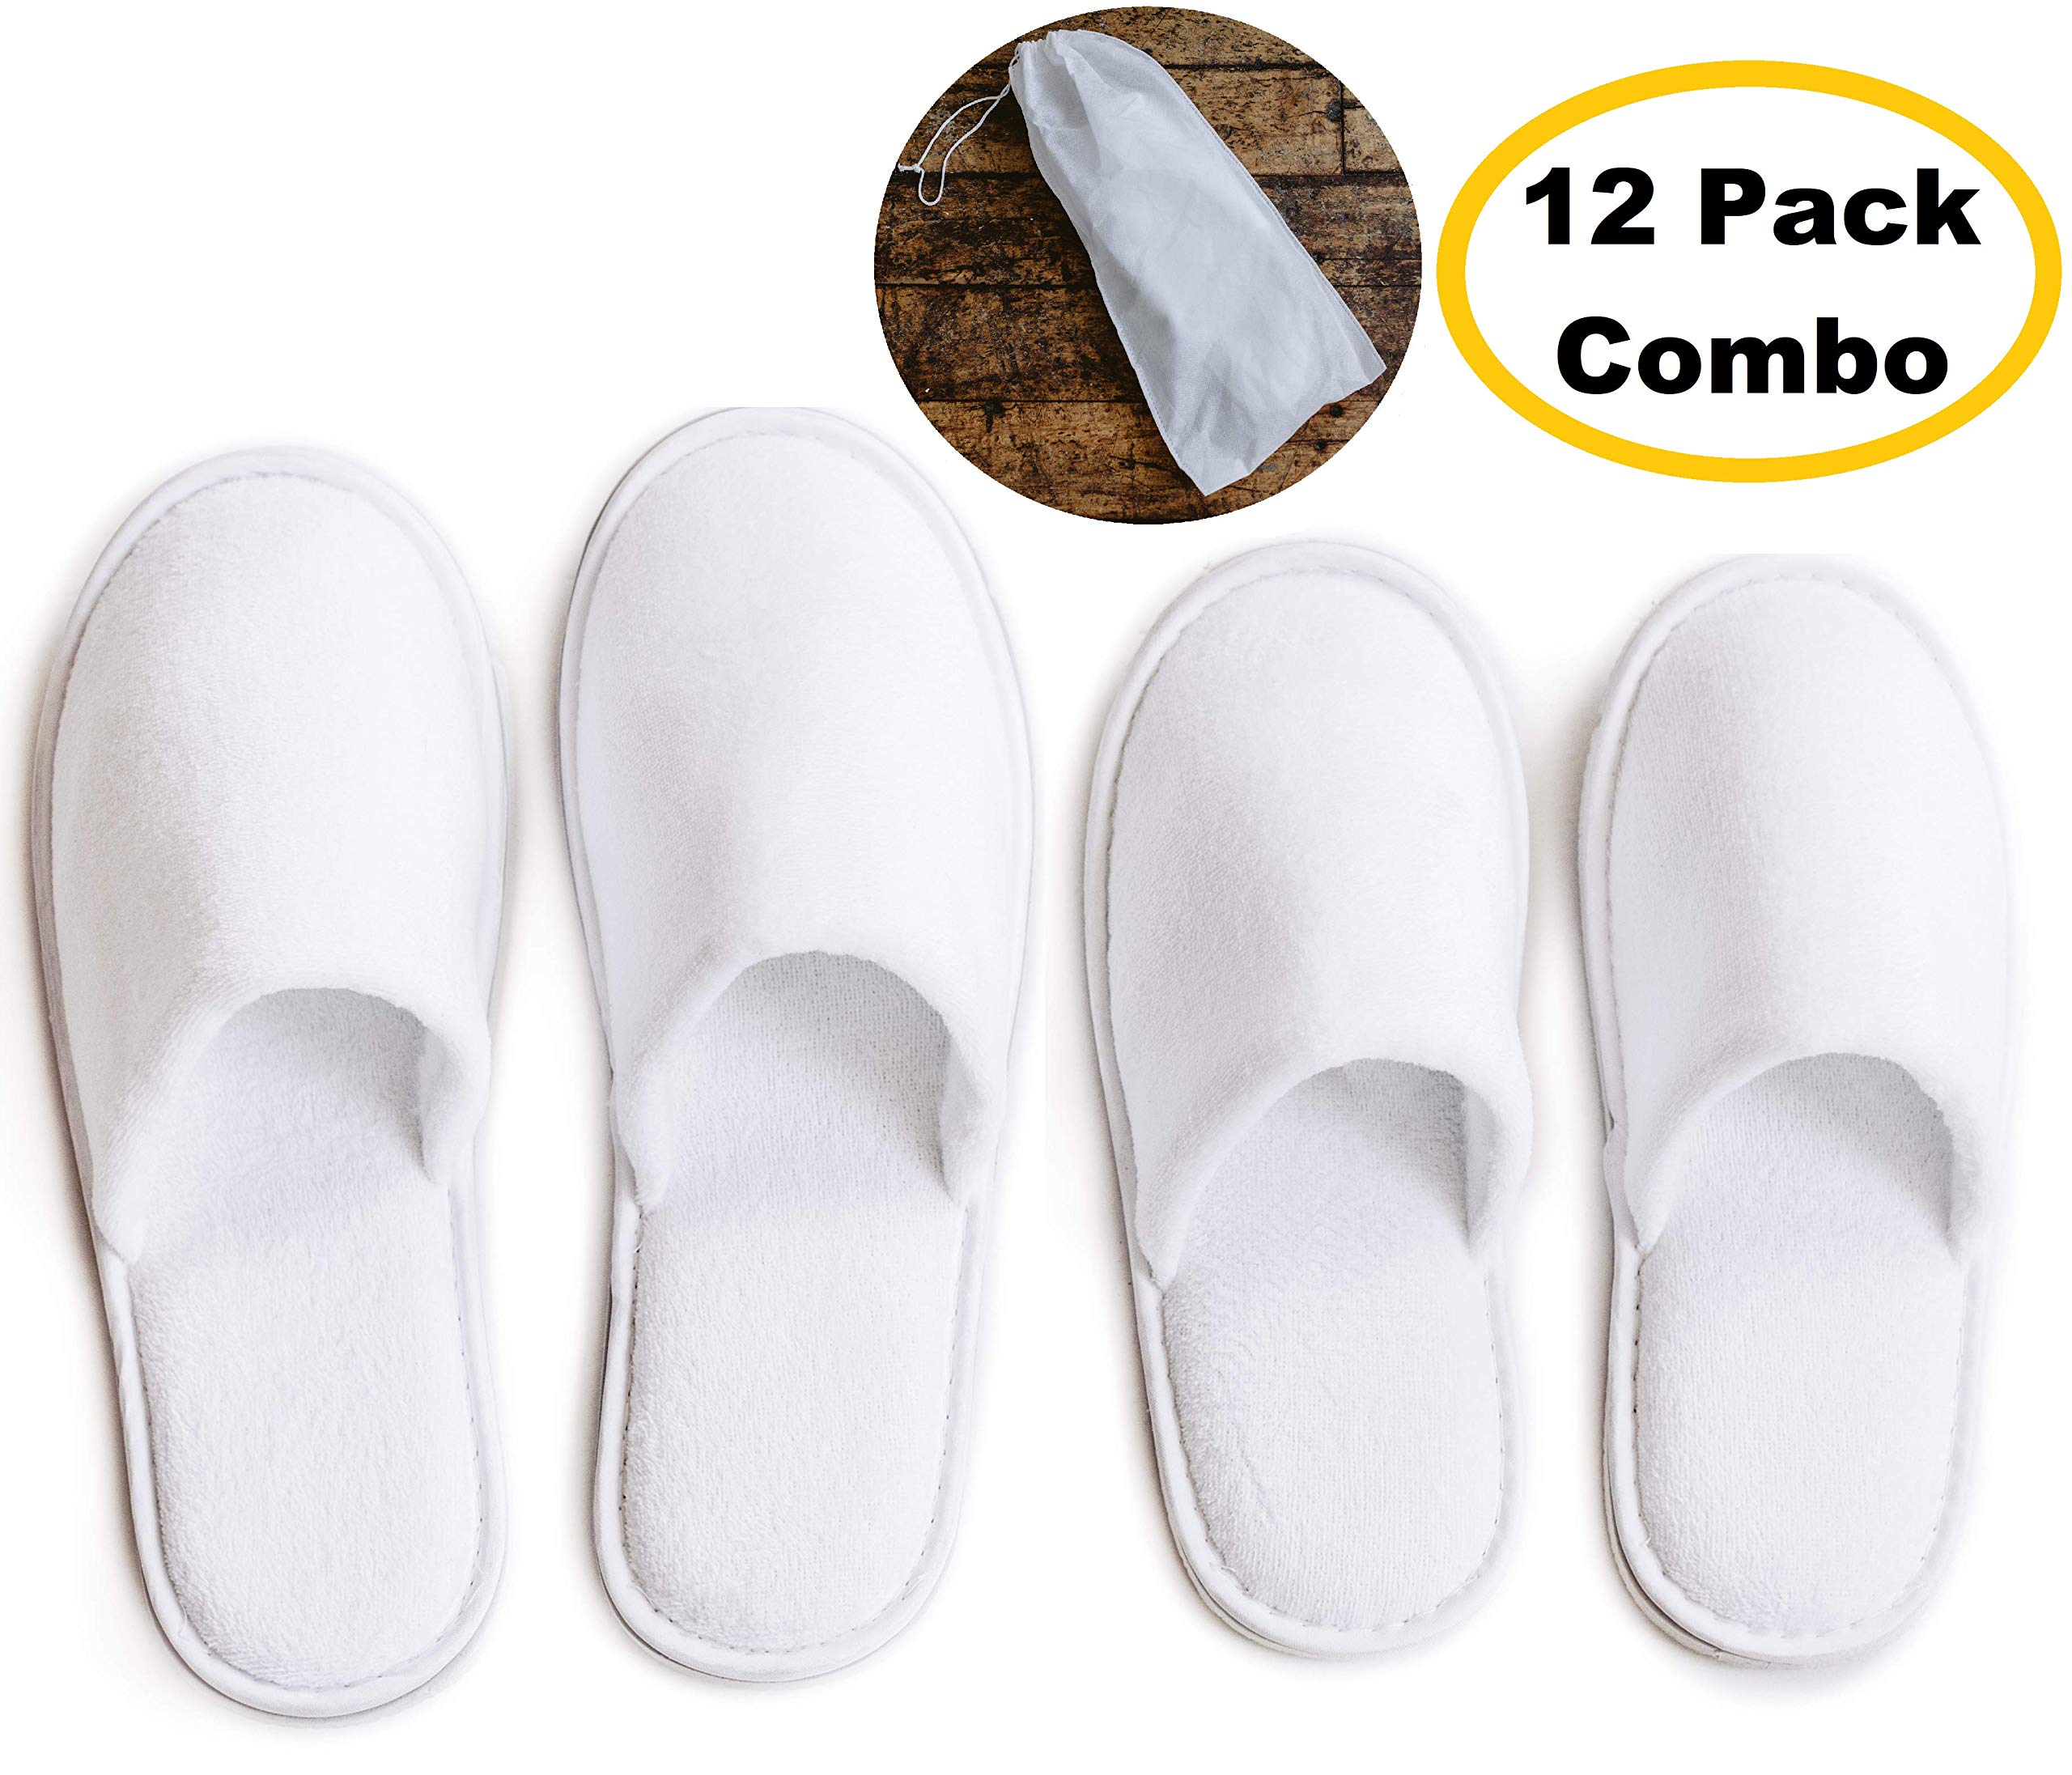 ModLux Spa Slippers - 12 Pairs of Cotton Velvet Closed Toe Slippers with Travel Bags - Thick, Soft, Non-Slip, Disposable Slippers - Fits Most Men and Women - Perfect for Home, Hotel, or Commercial Use by ModLux